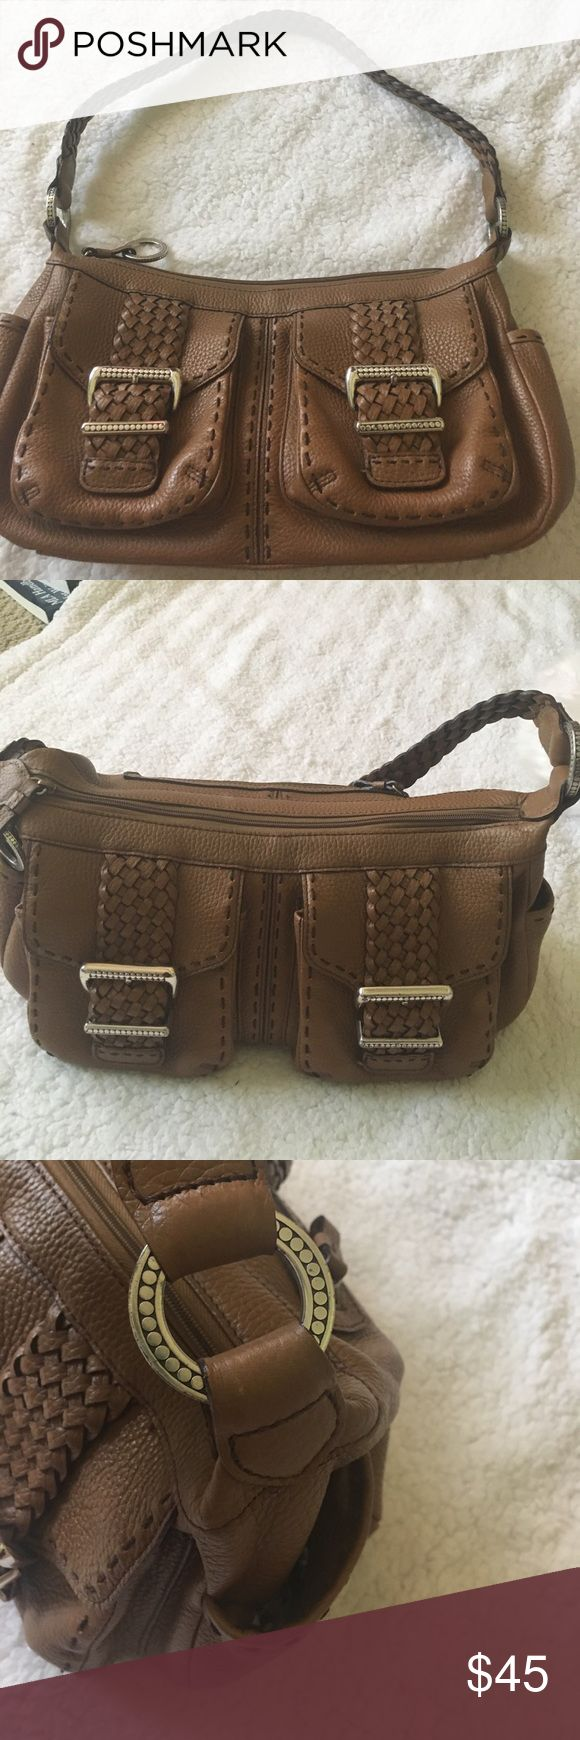 EUC Brighton Brown Leather Purse ADORABLE This is for a EUC Brighton brown leather purse.  It is as cute as it can be with an adorable lining on the inside.  This purse has no problems whatsoever to speak of with the exception of some slight tarnishing on the silver plated hardware on the front pockets of the purse (please see pic).  This is a high quality Brighton bag purchased from a Brighton store. Brighton Bags Shoulder Bags